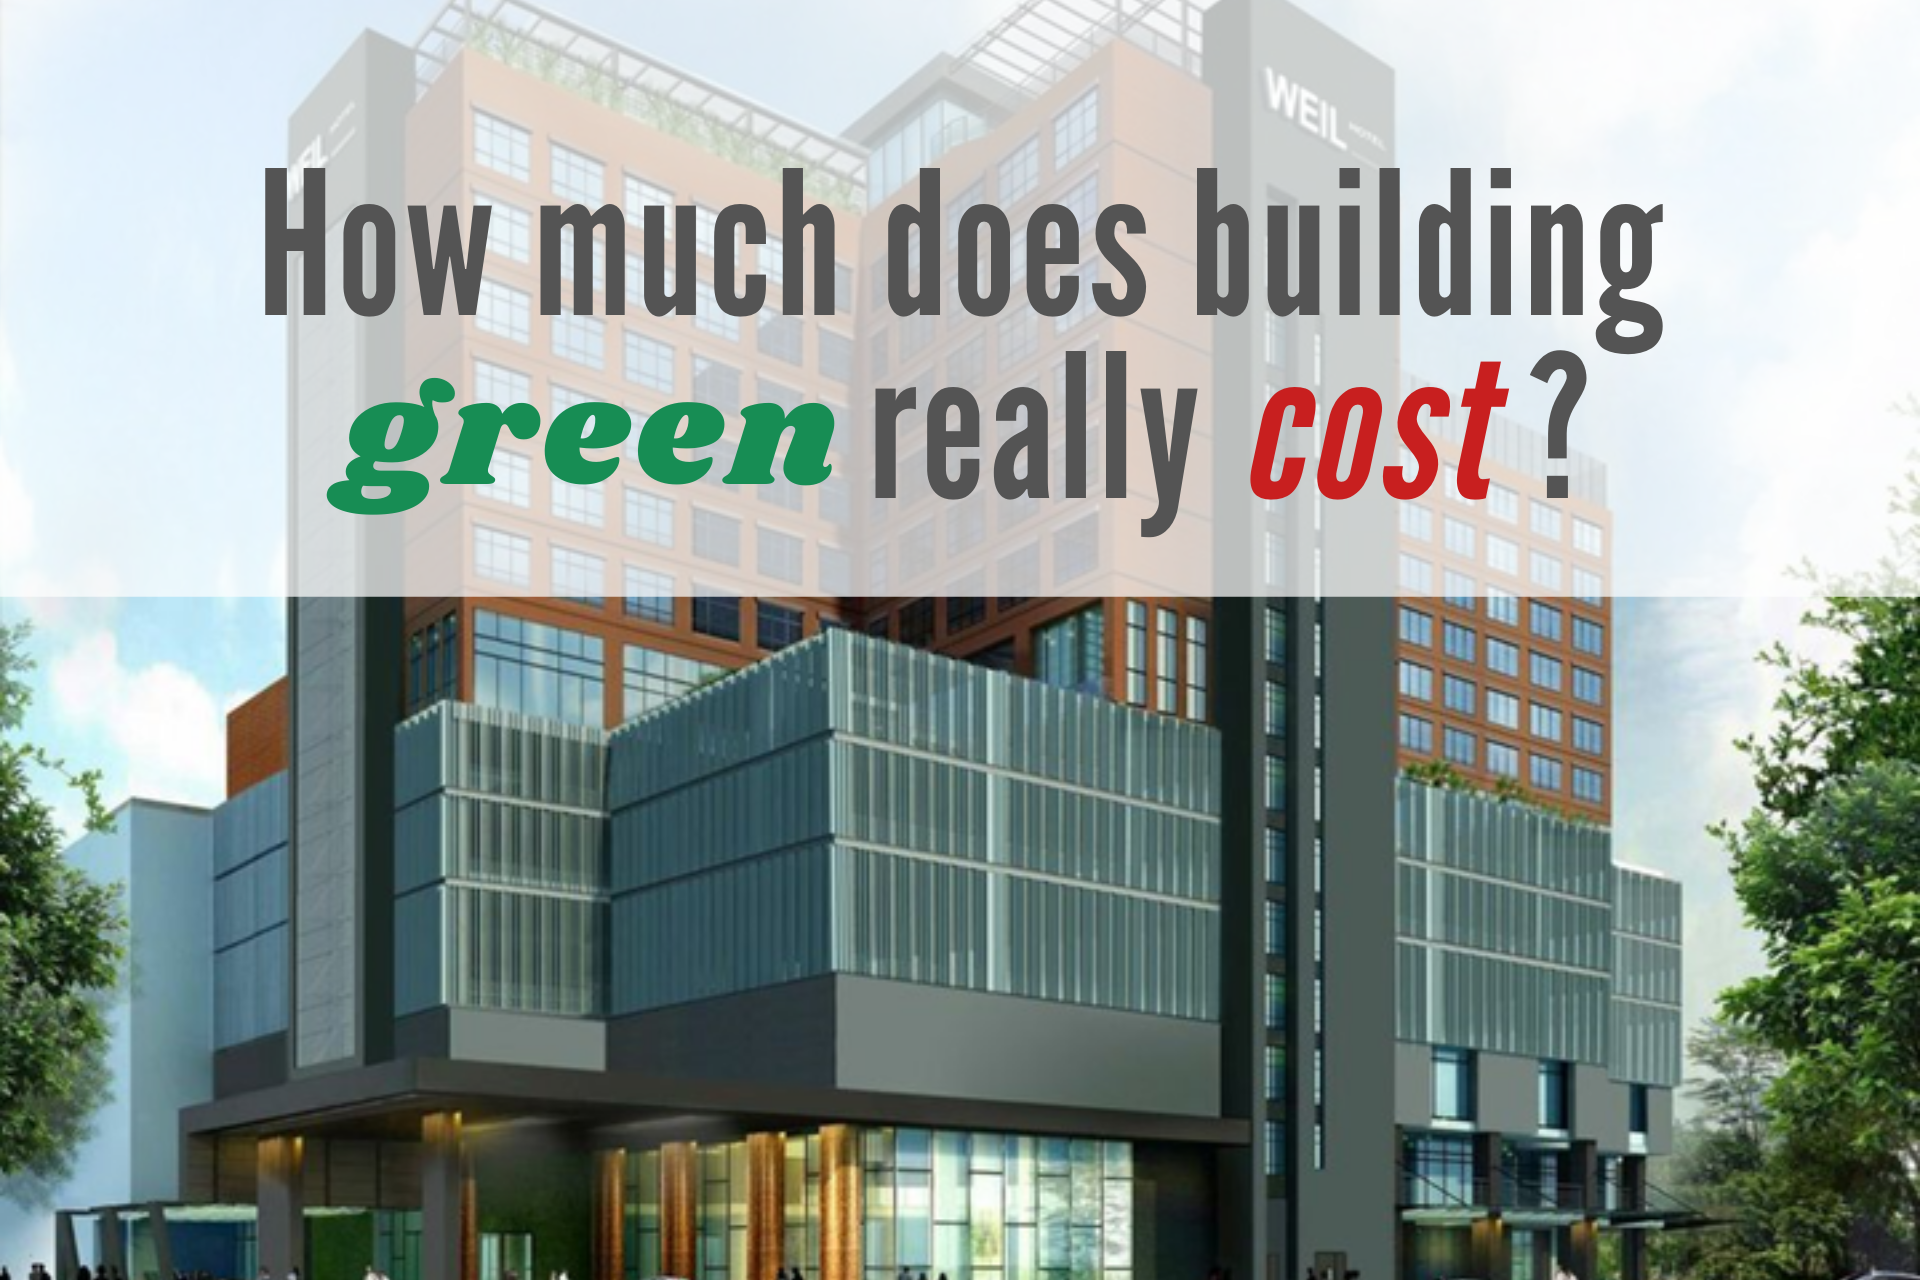 How much does building Green really cost?